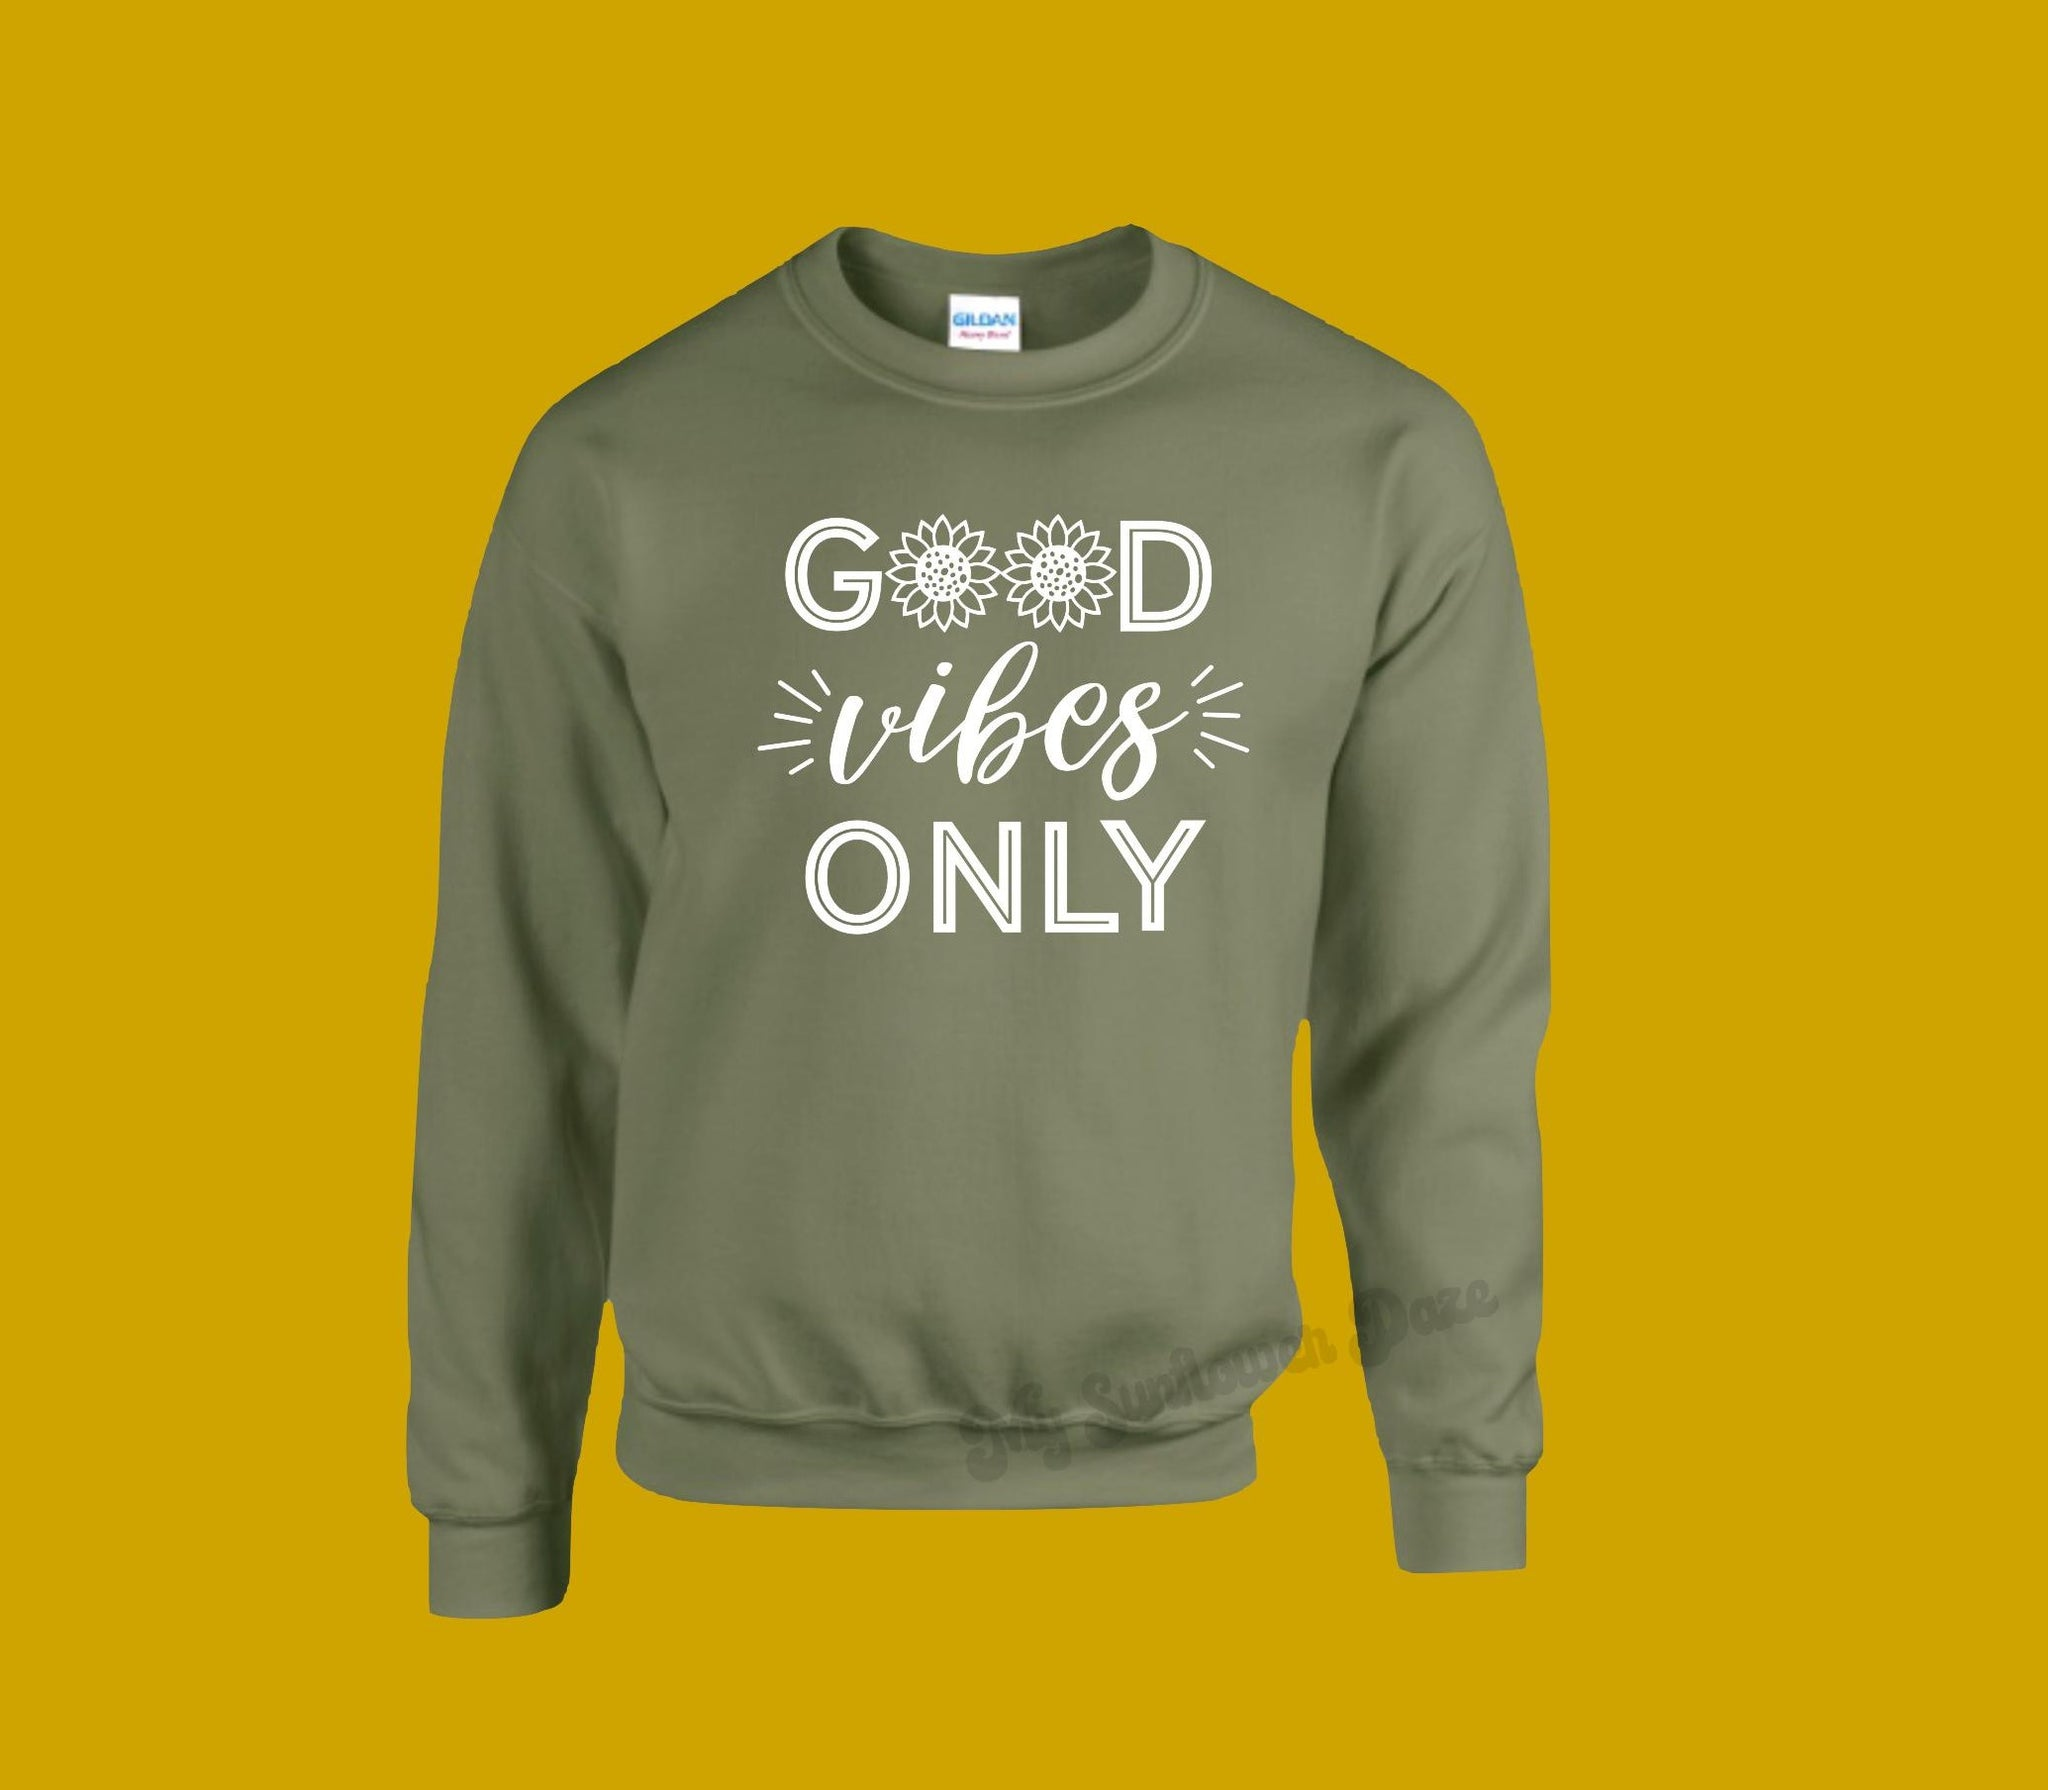 Good vibes only - Unisex Sweatshirt - Two Colors